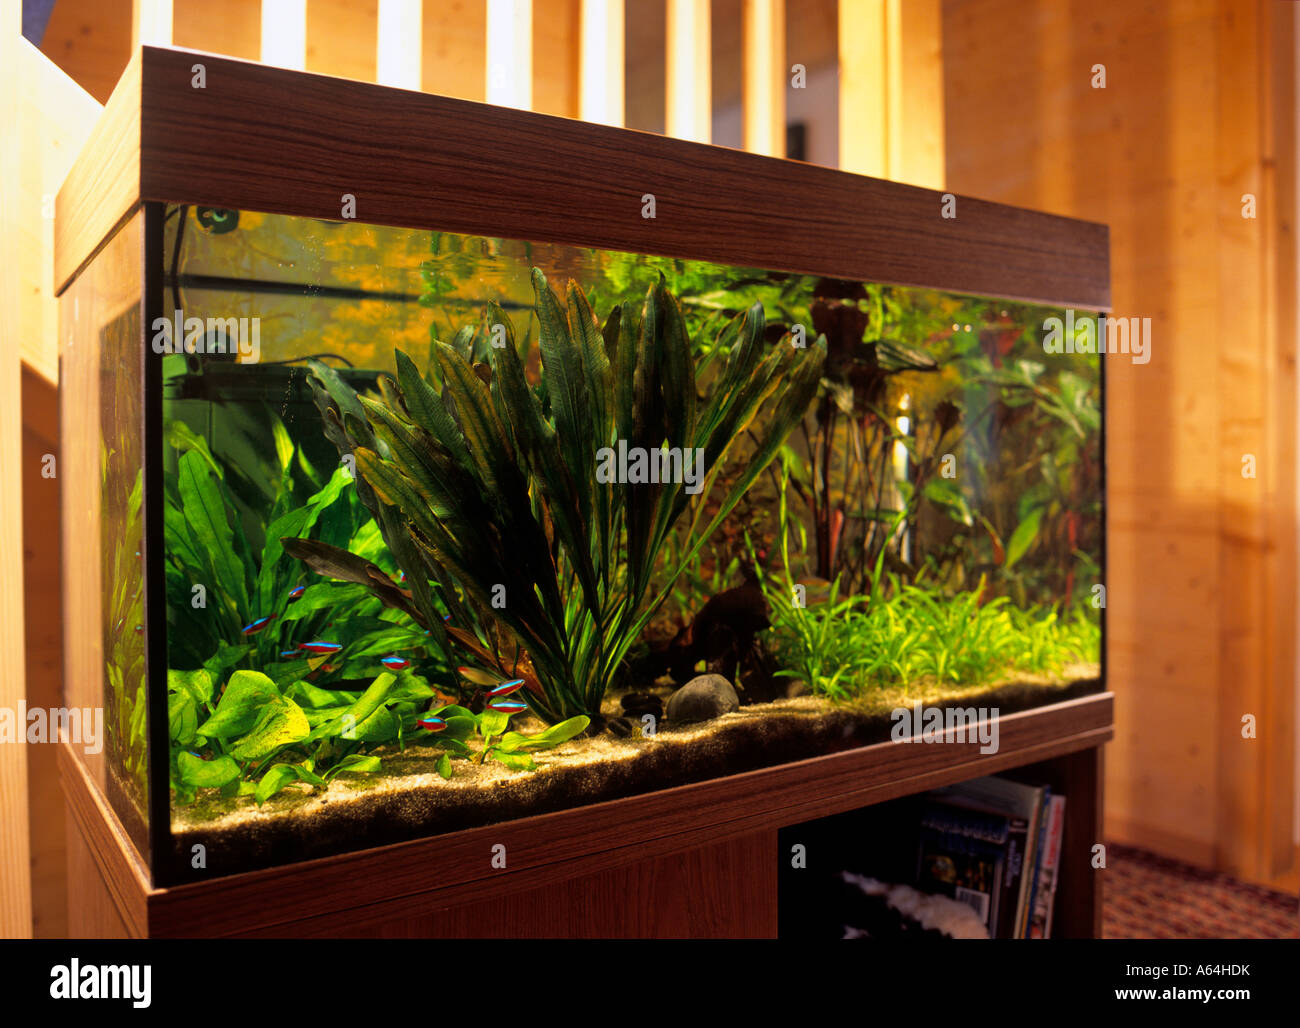 aquarium in livingroom - Stock Image